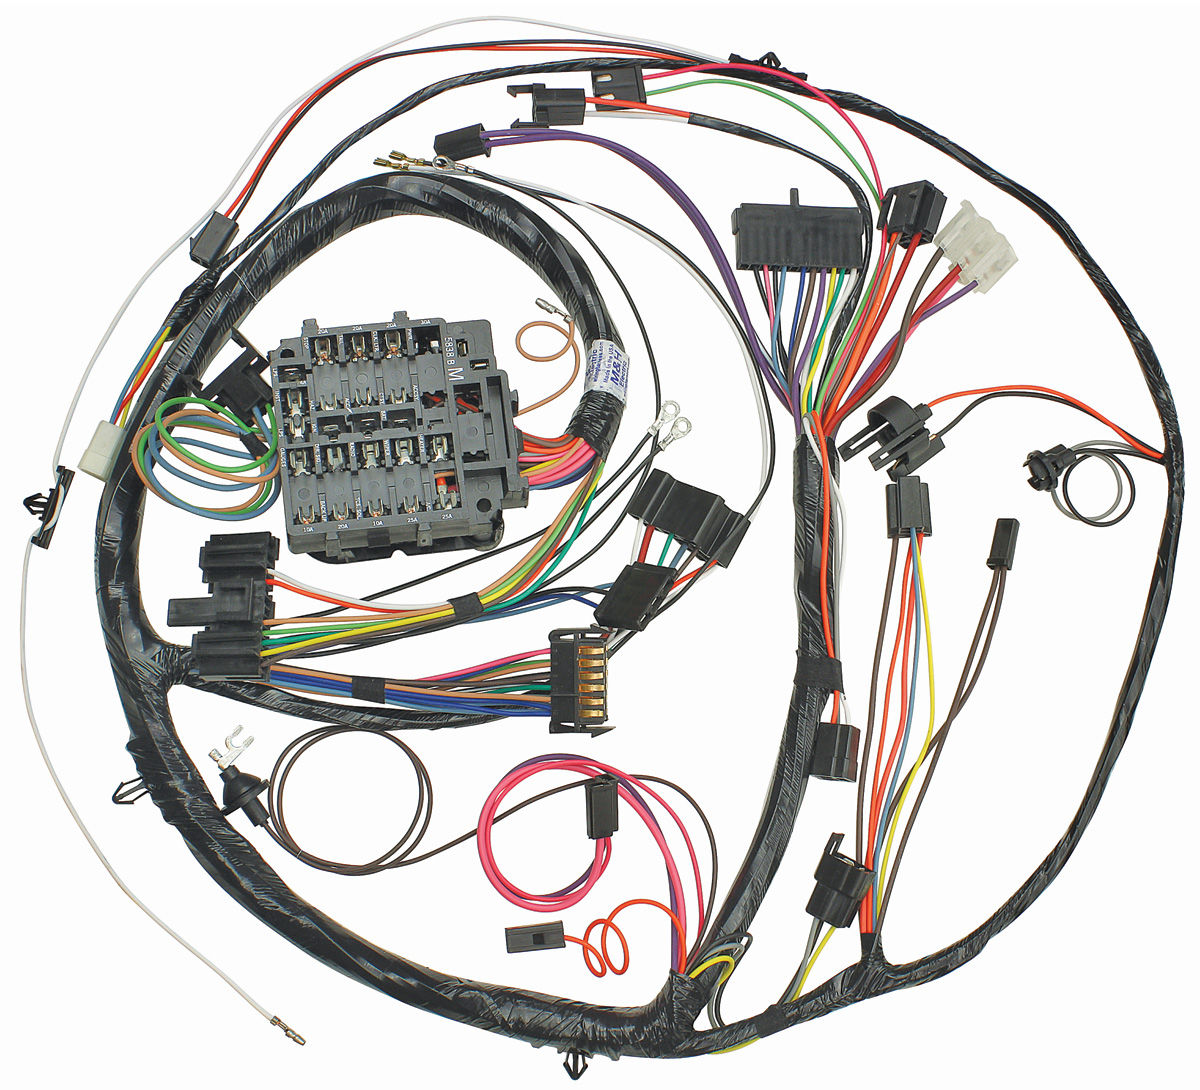 m&h 1971 chevelle dash/instrument panel harness all, round ... 68 charger wiring diagram for dash wiring diagram for dash gauges 69 w30